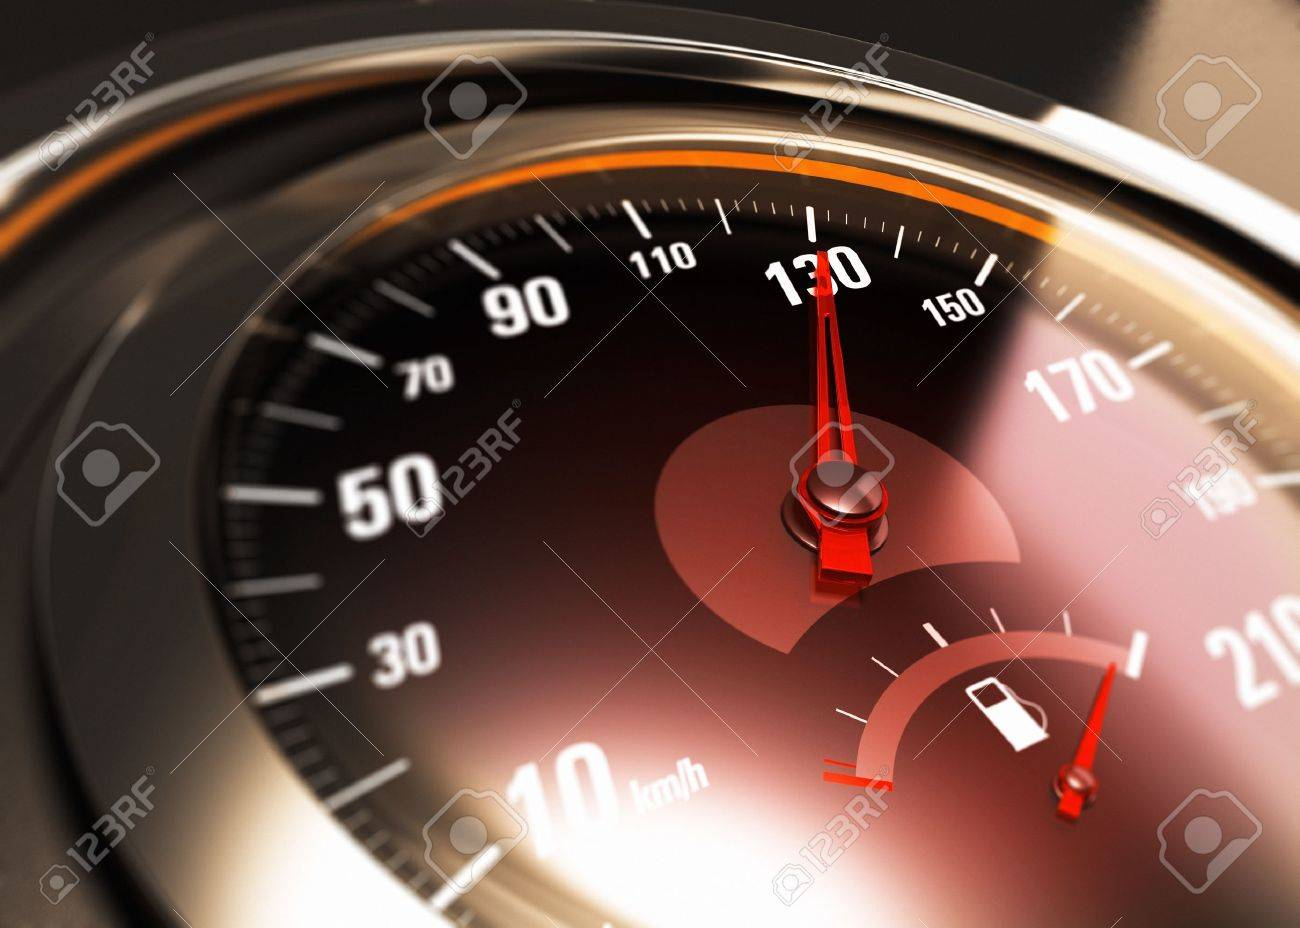 Close up of a car speedometer with the needle pointing 130 Km/h Stock Photo - 21927151